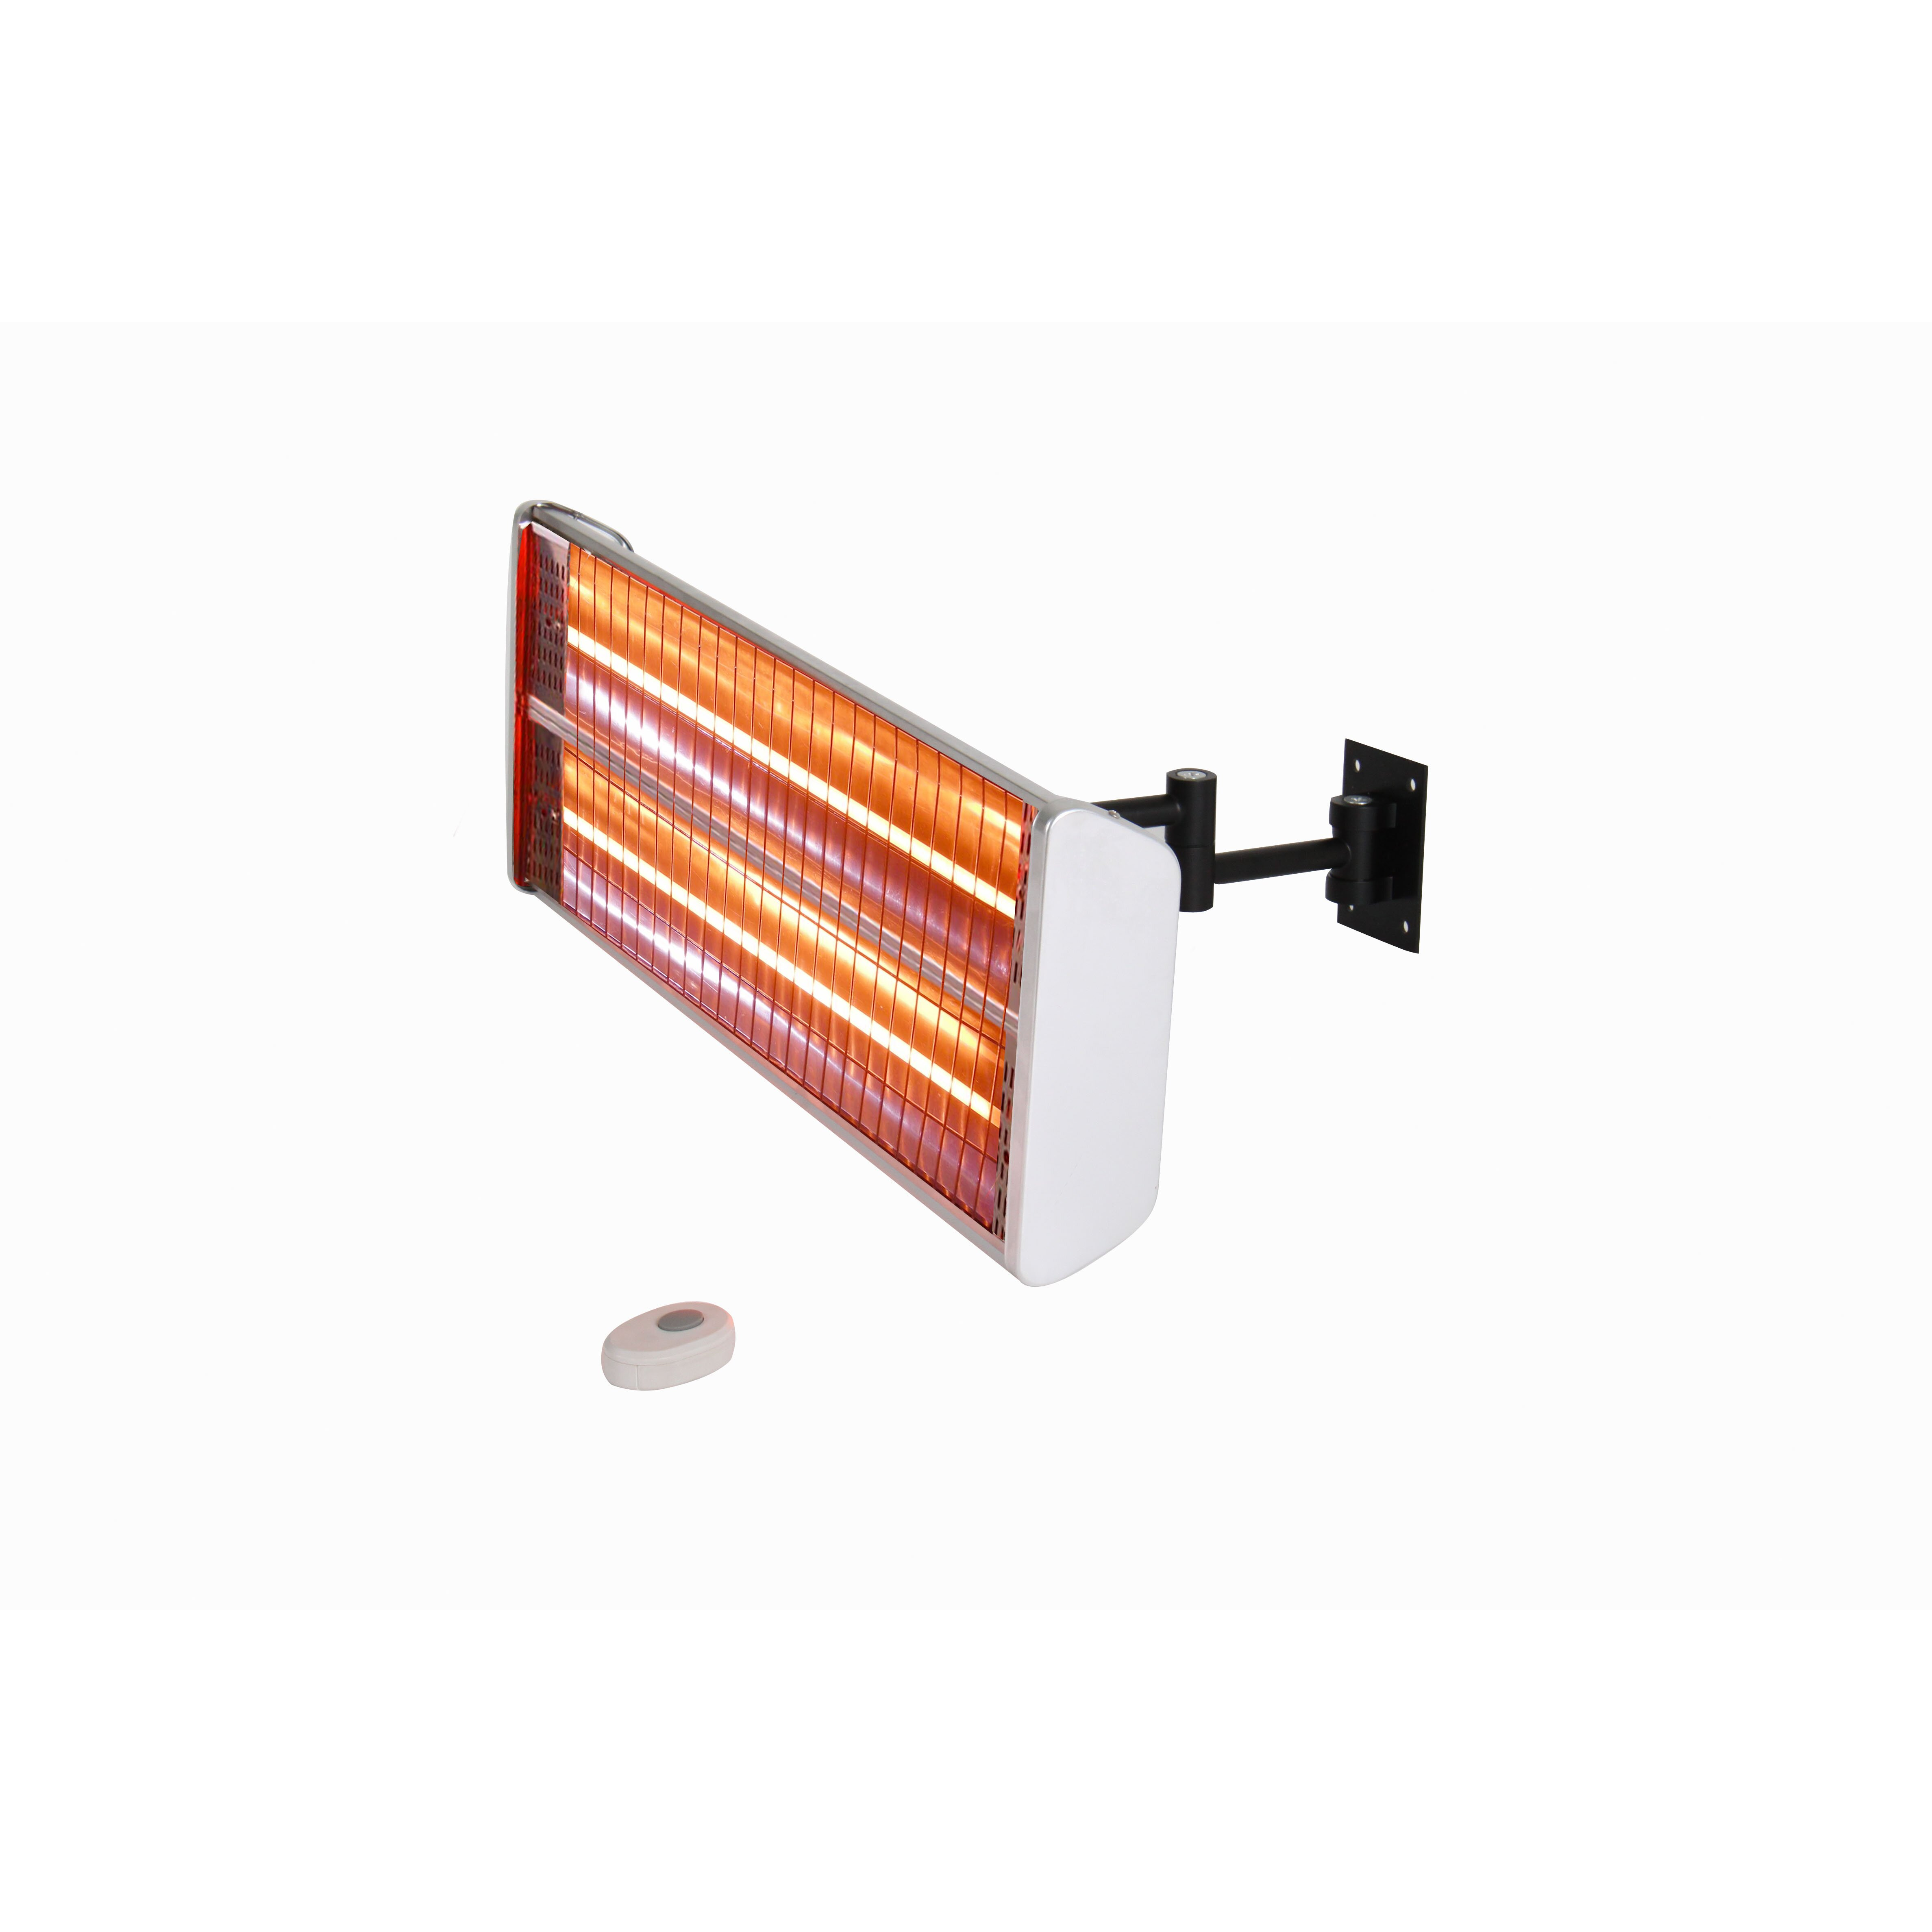 Energ wall mount hanging dual electric patio heater amp reviews